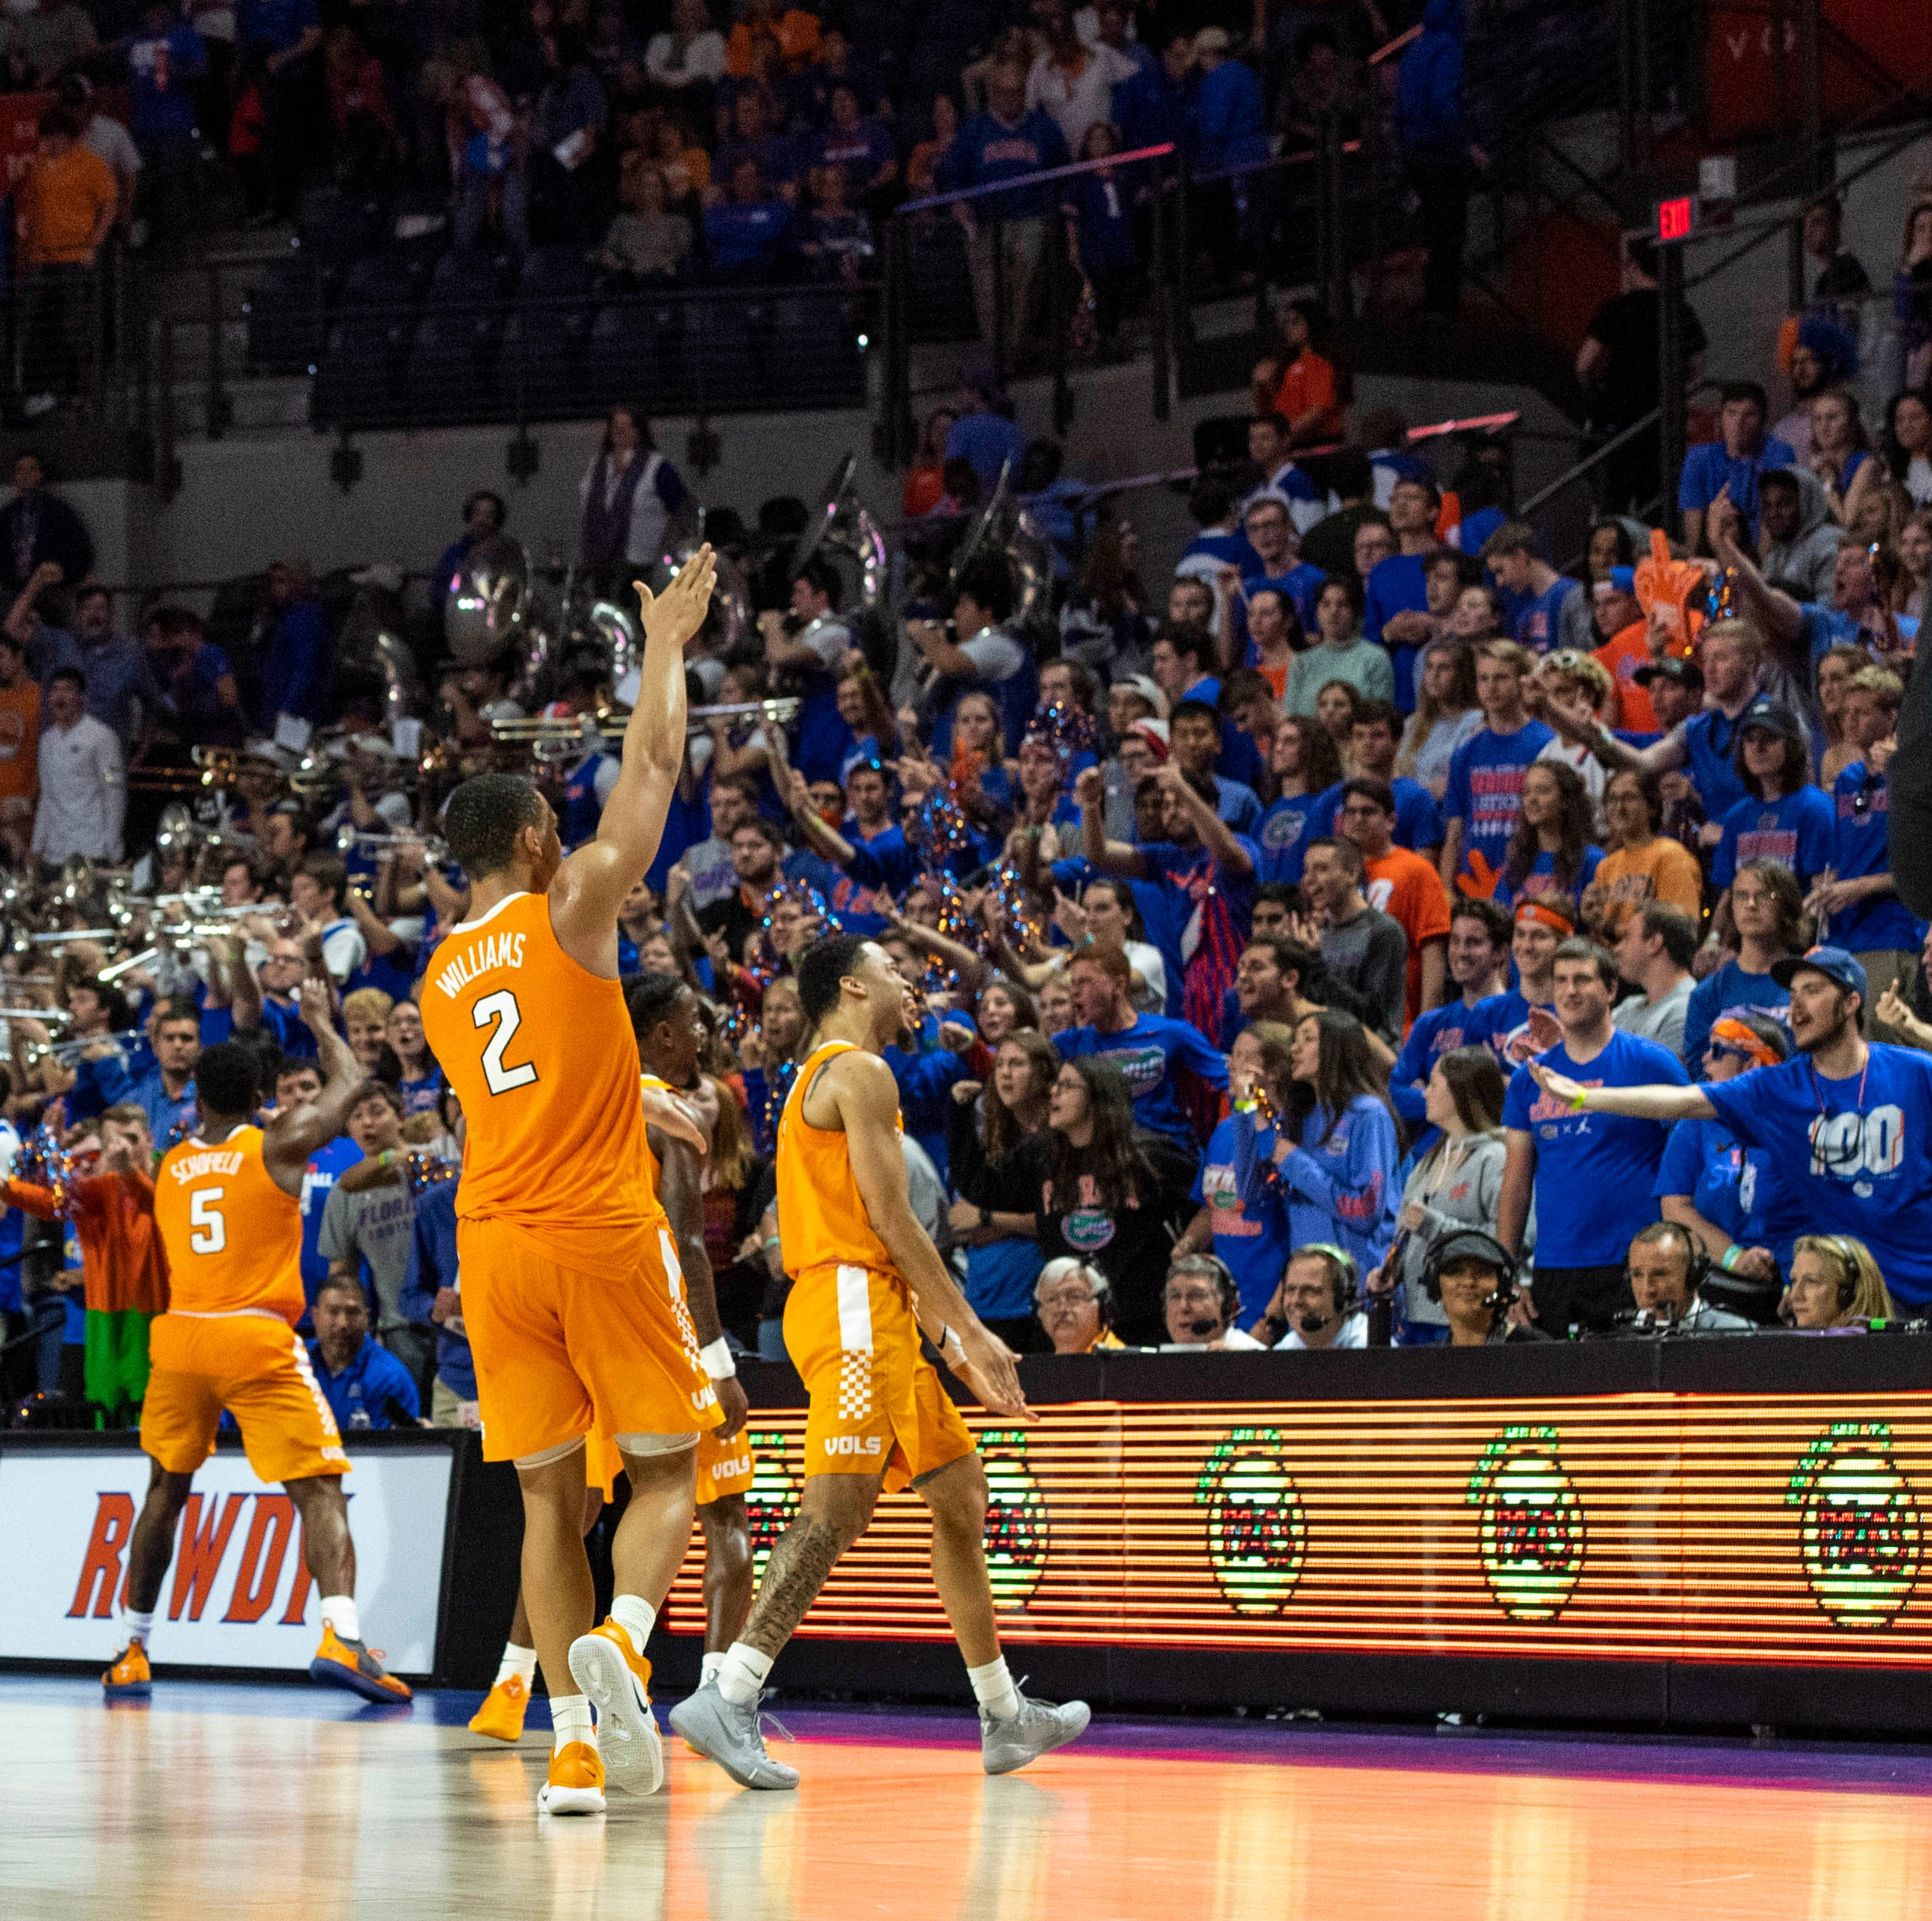 What UT Vols basketball coach Rick Barnes thought about Gator chomp celebration